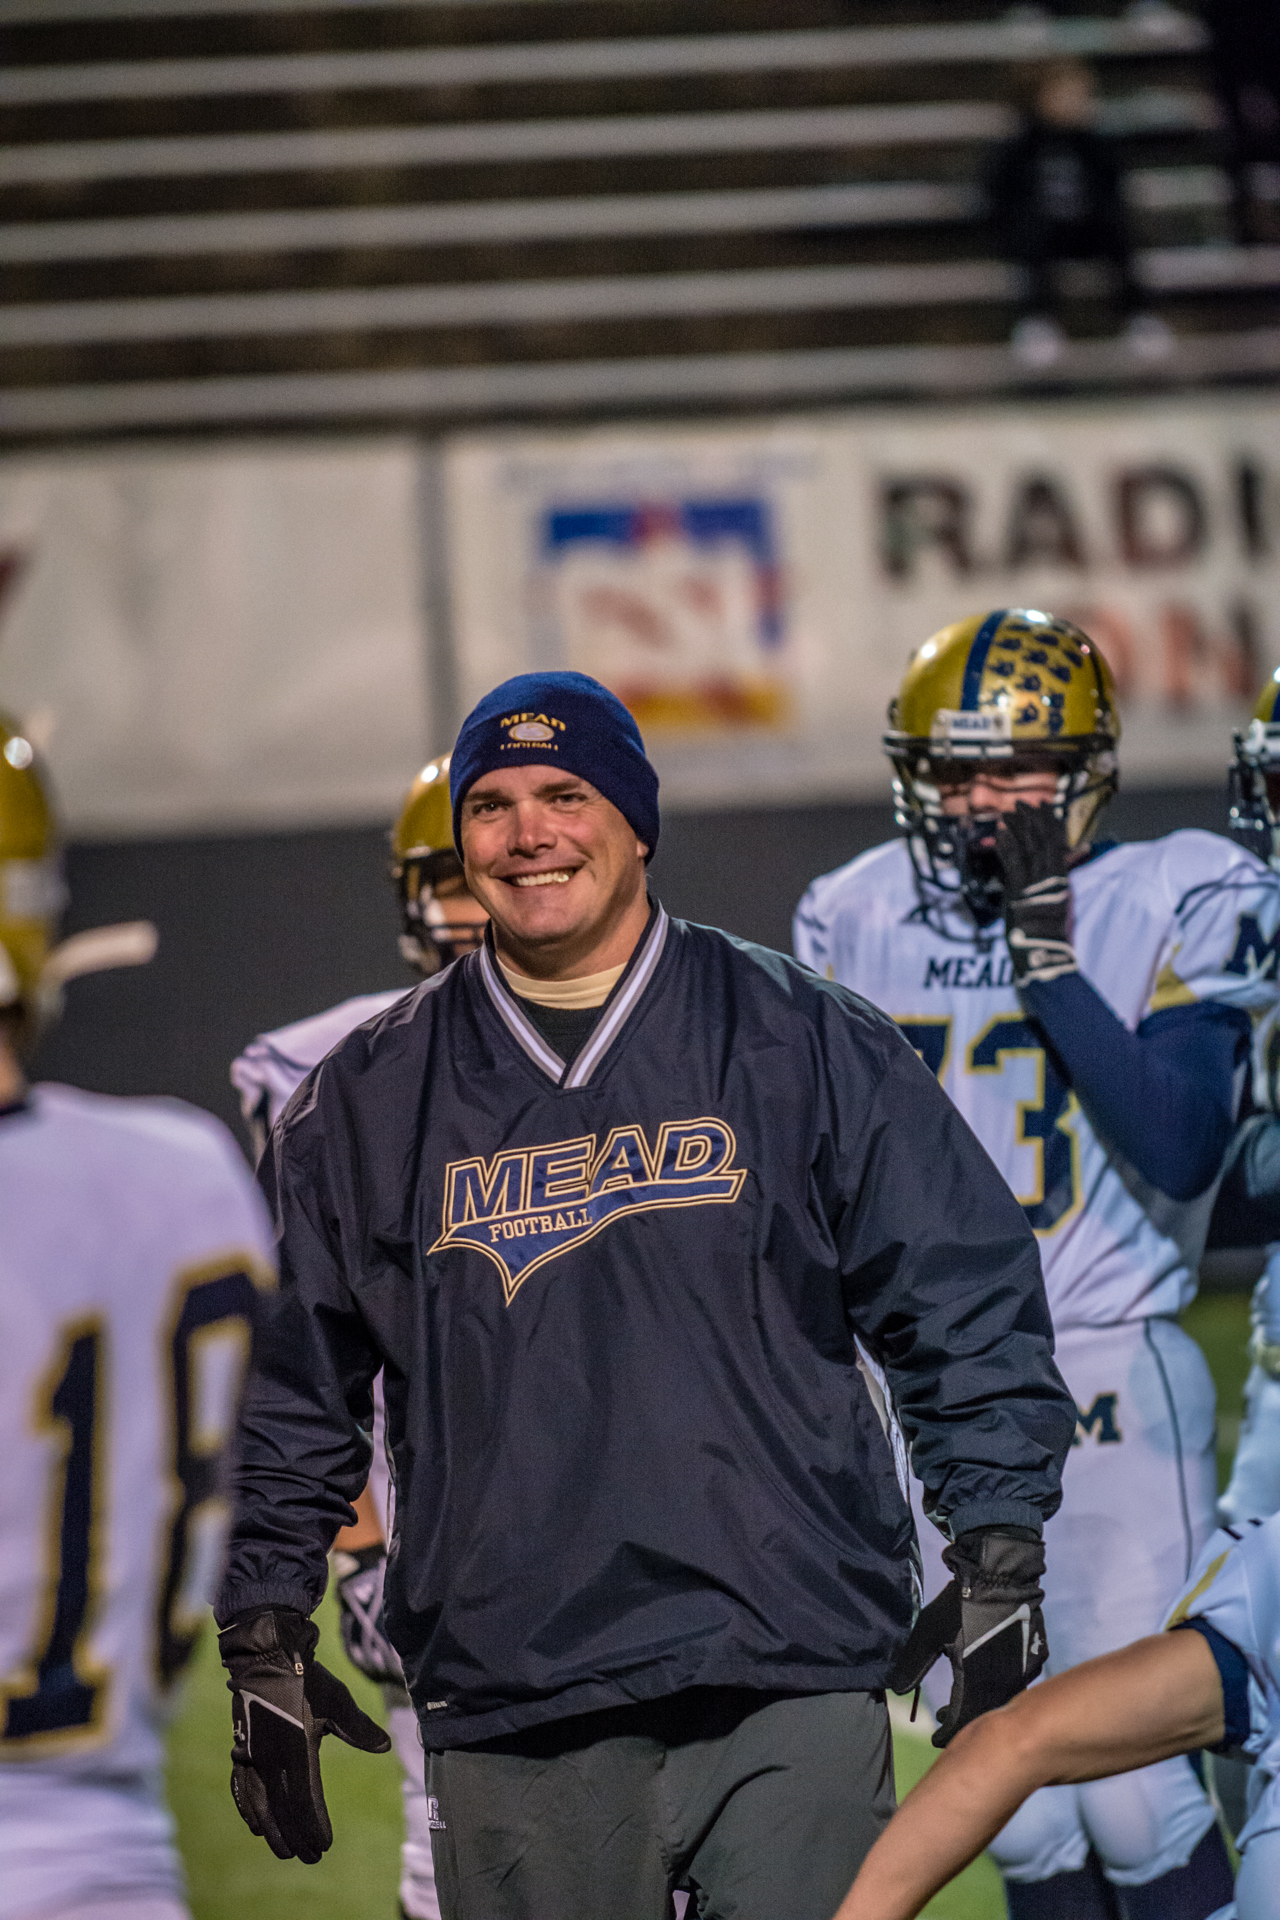 Sean Carty resigned as head football coach at Mead High School on Monday. His leadership will be missed.